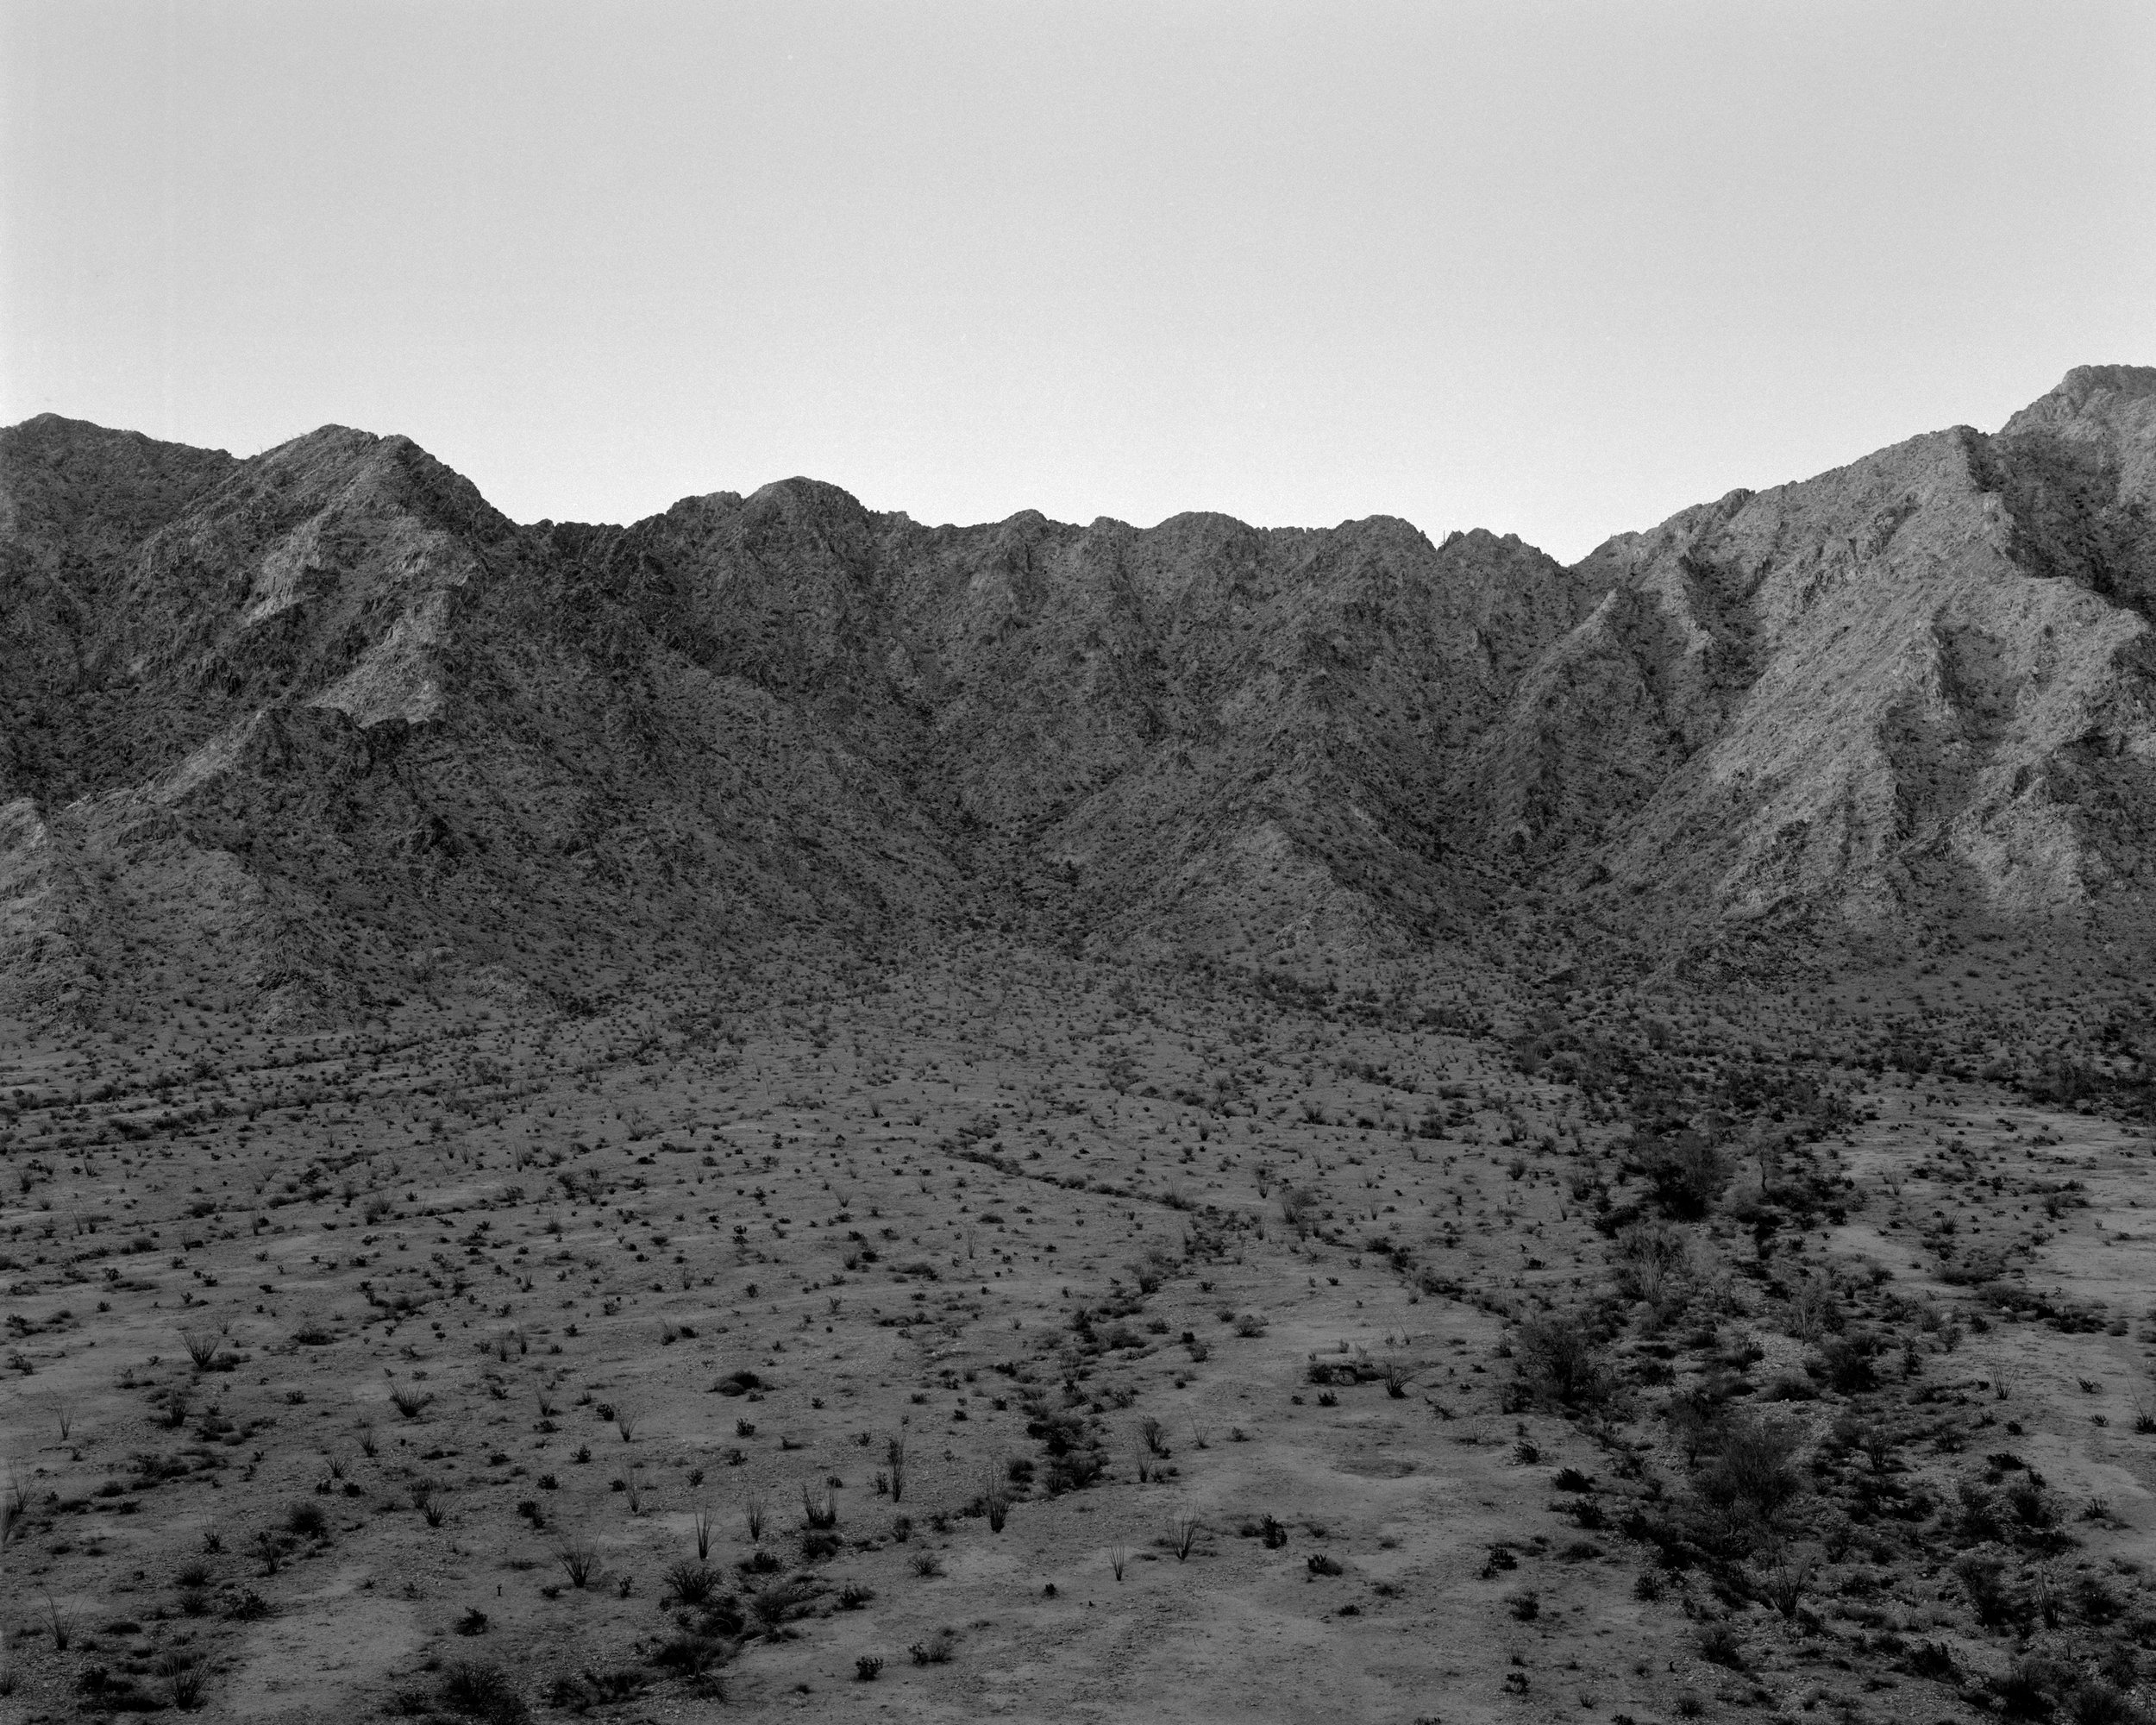 MICHAEL LUNDGREN  Basin, 2005  Gelatin Silver Print  Available sizes 20 x 24 in, ed. 10 + 2AP 32 x 40 in, ed. 3 + 1AP